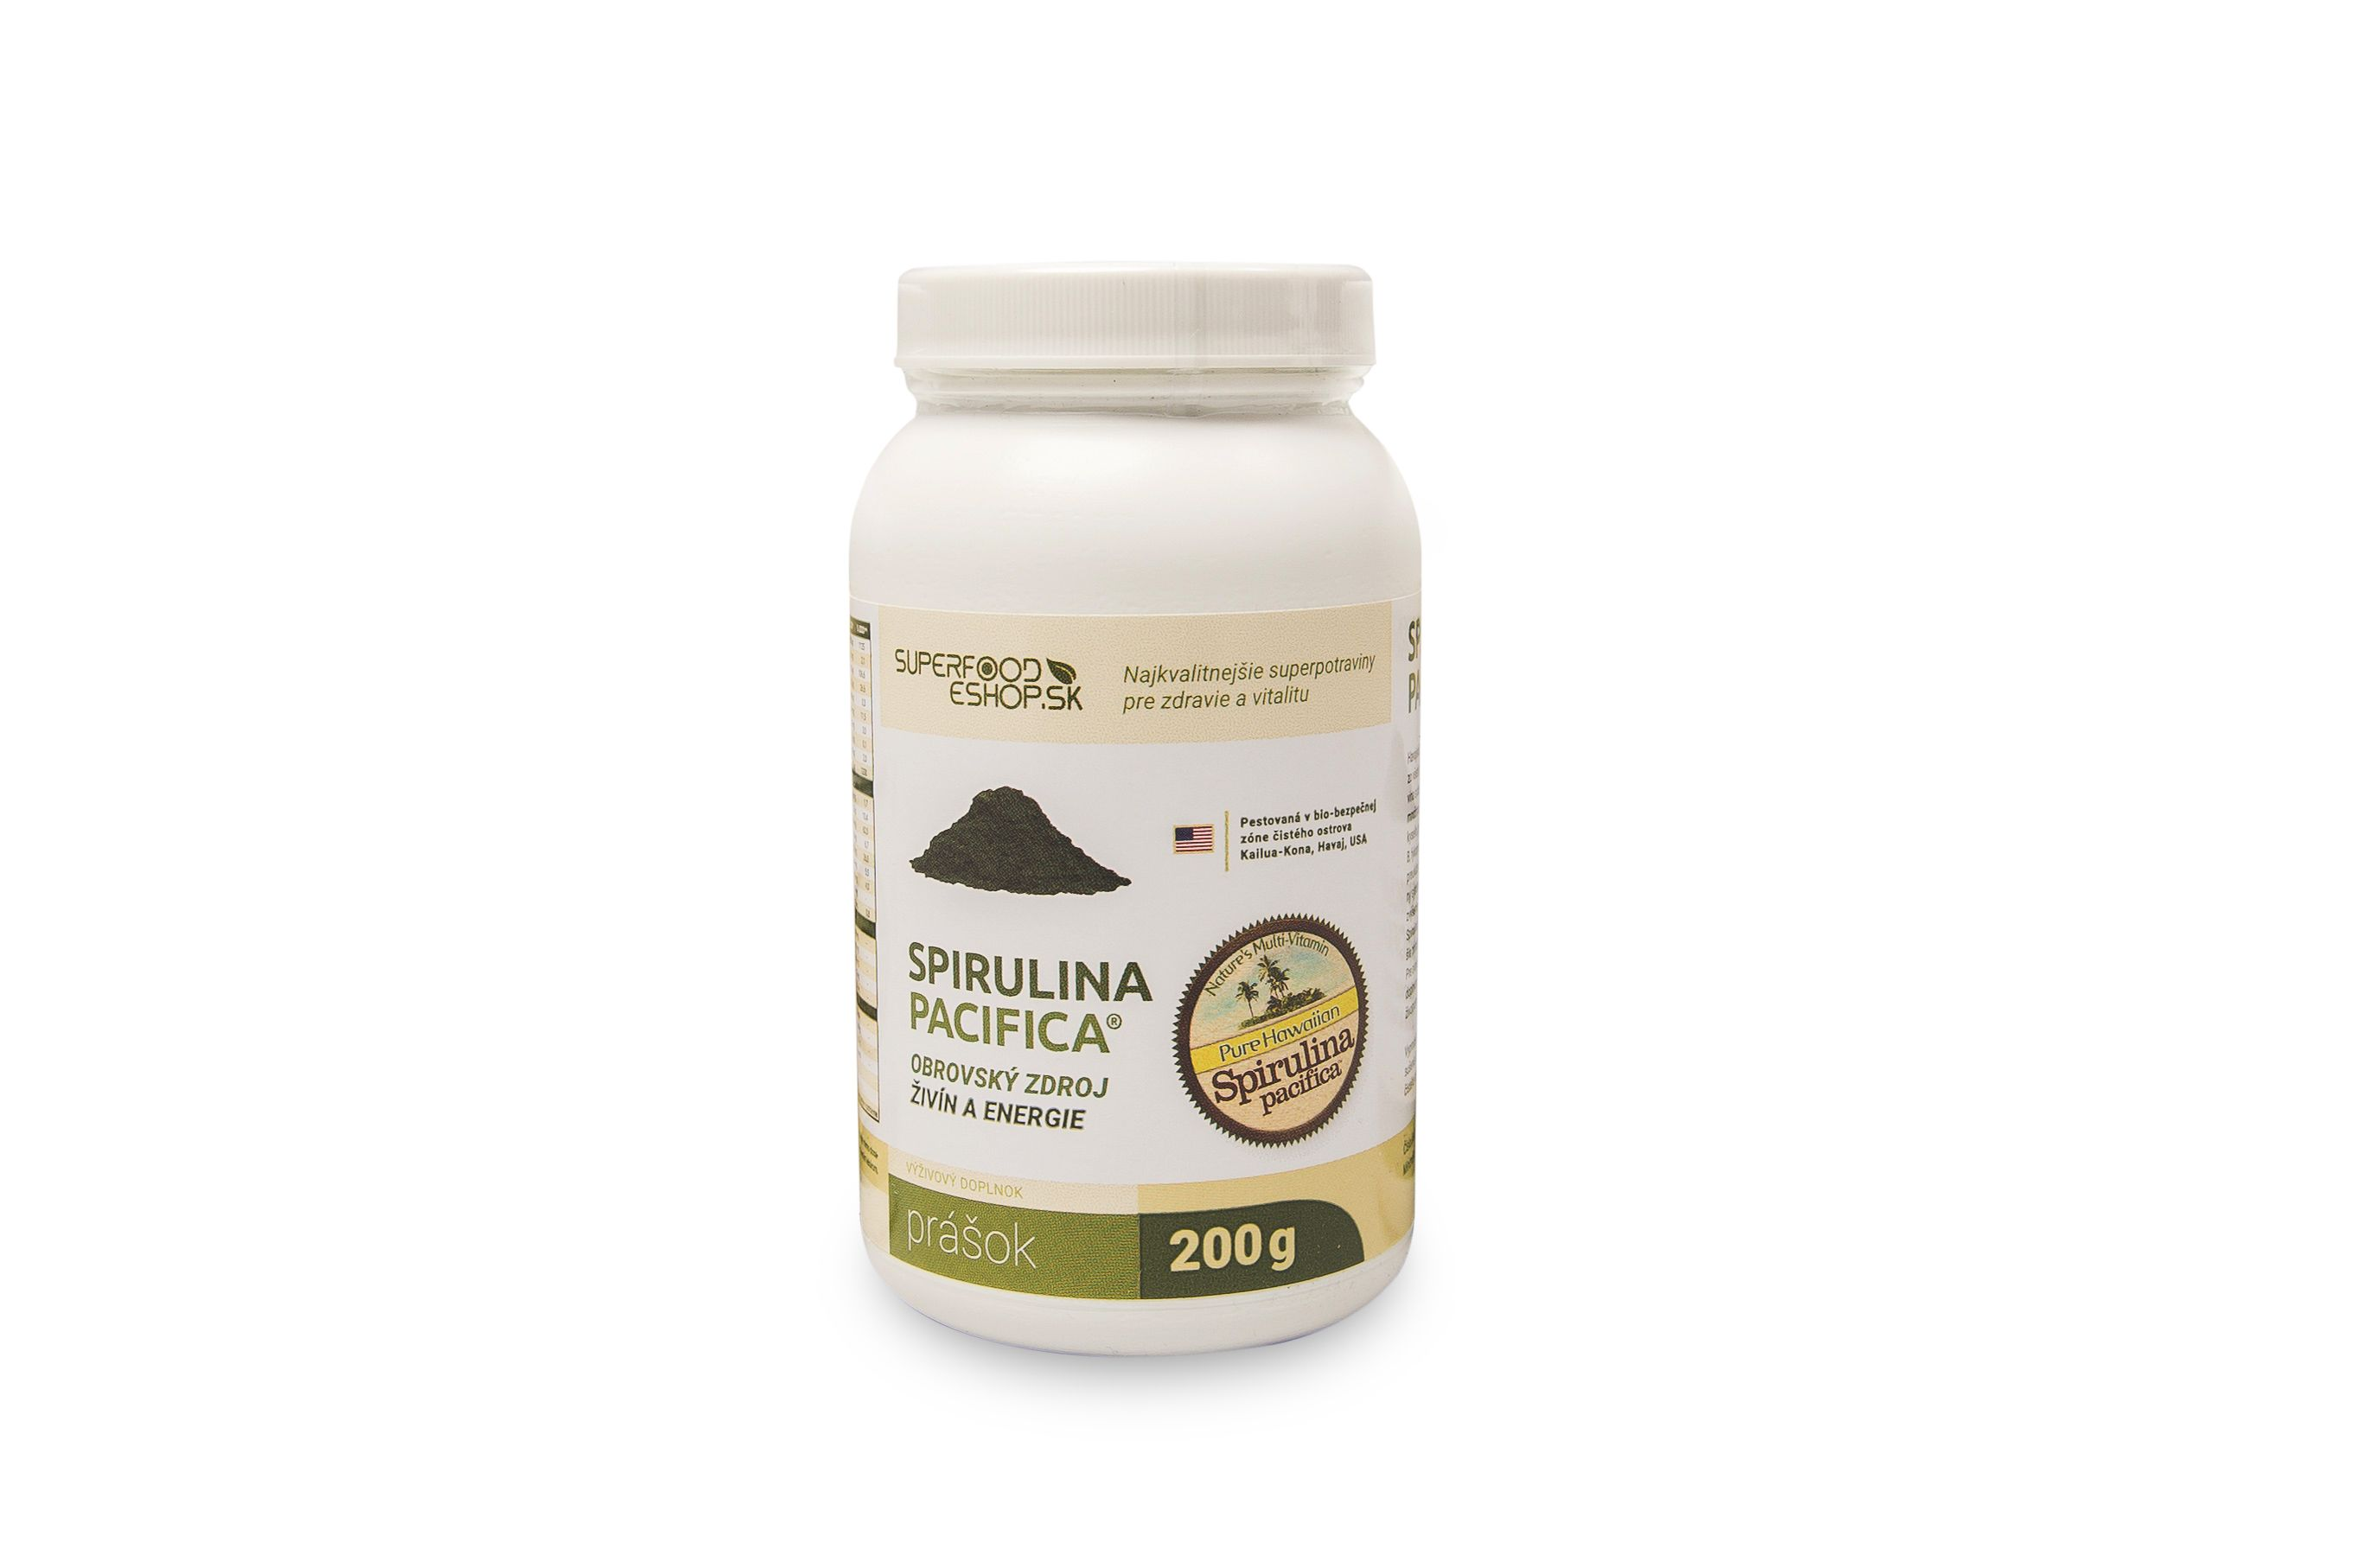 Our 200g Powder of Spirulina Pacifica Hawaii - available now :)  We ship to all EU, please order via mail at  info@superfood-eshop.eu